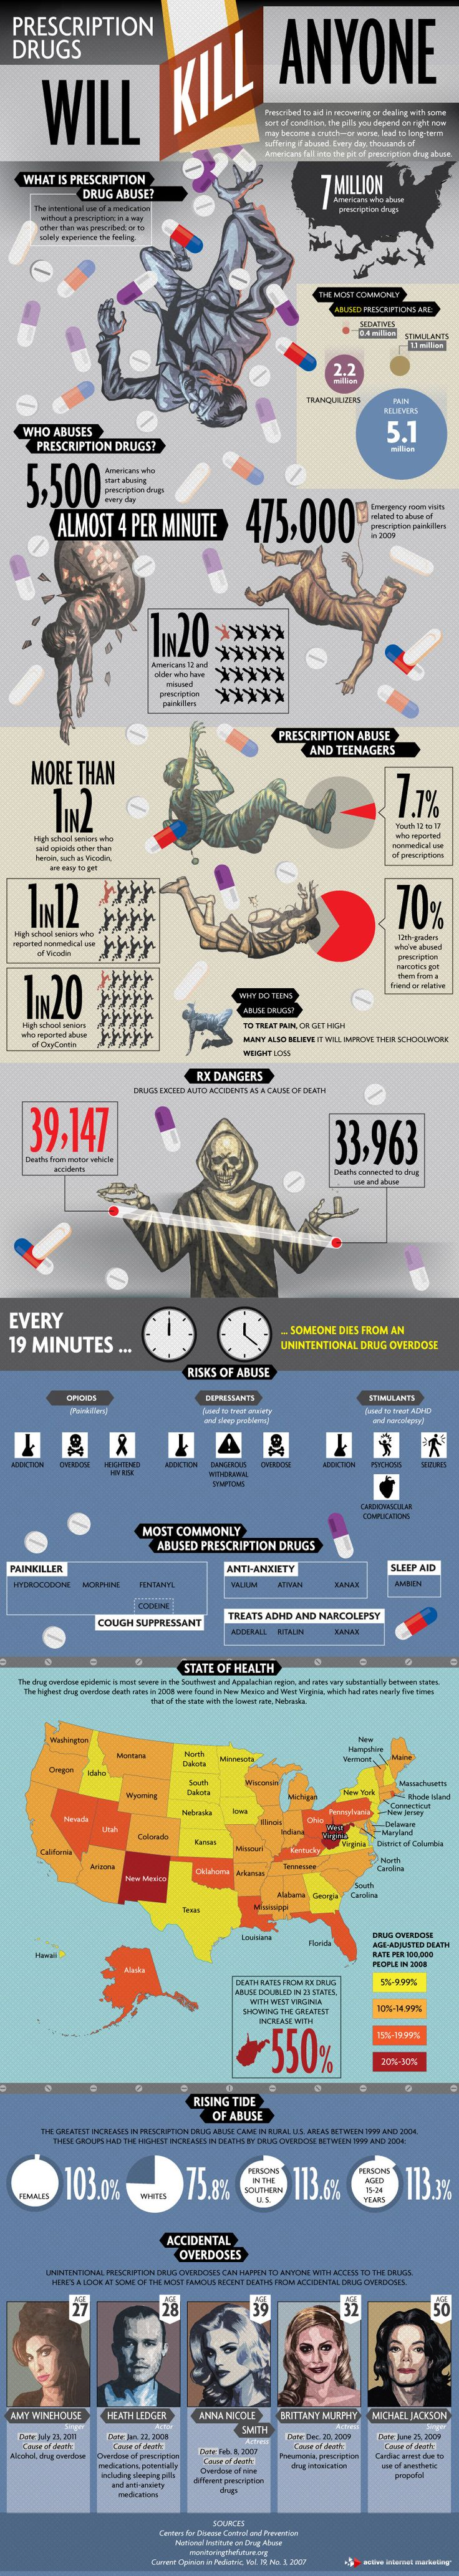 Prescription Drugs Will Kill Anyone - Posting this to help raise awareness regarding drug safety as so many of us take medications for medical conditions and it isn't hard to make an honest mistake.